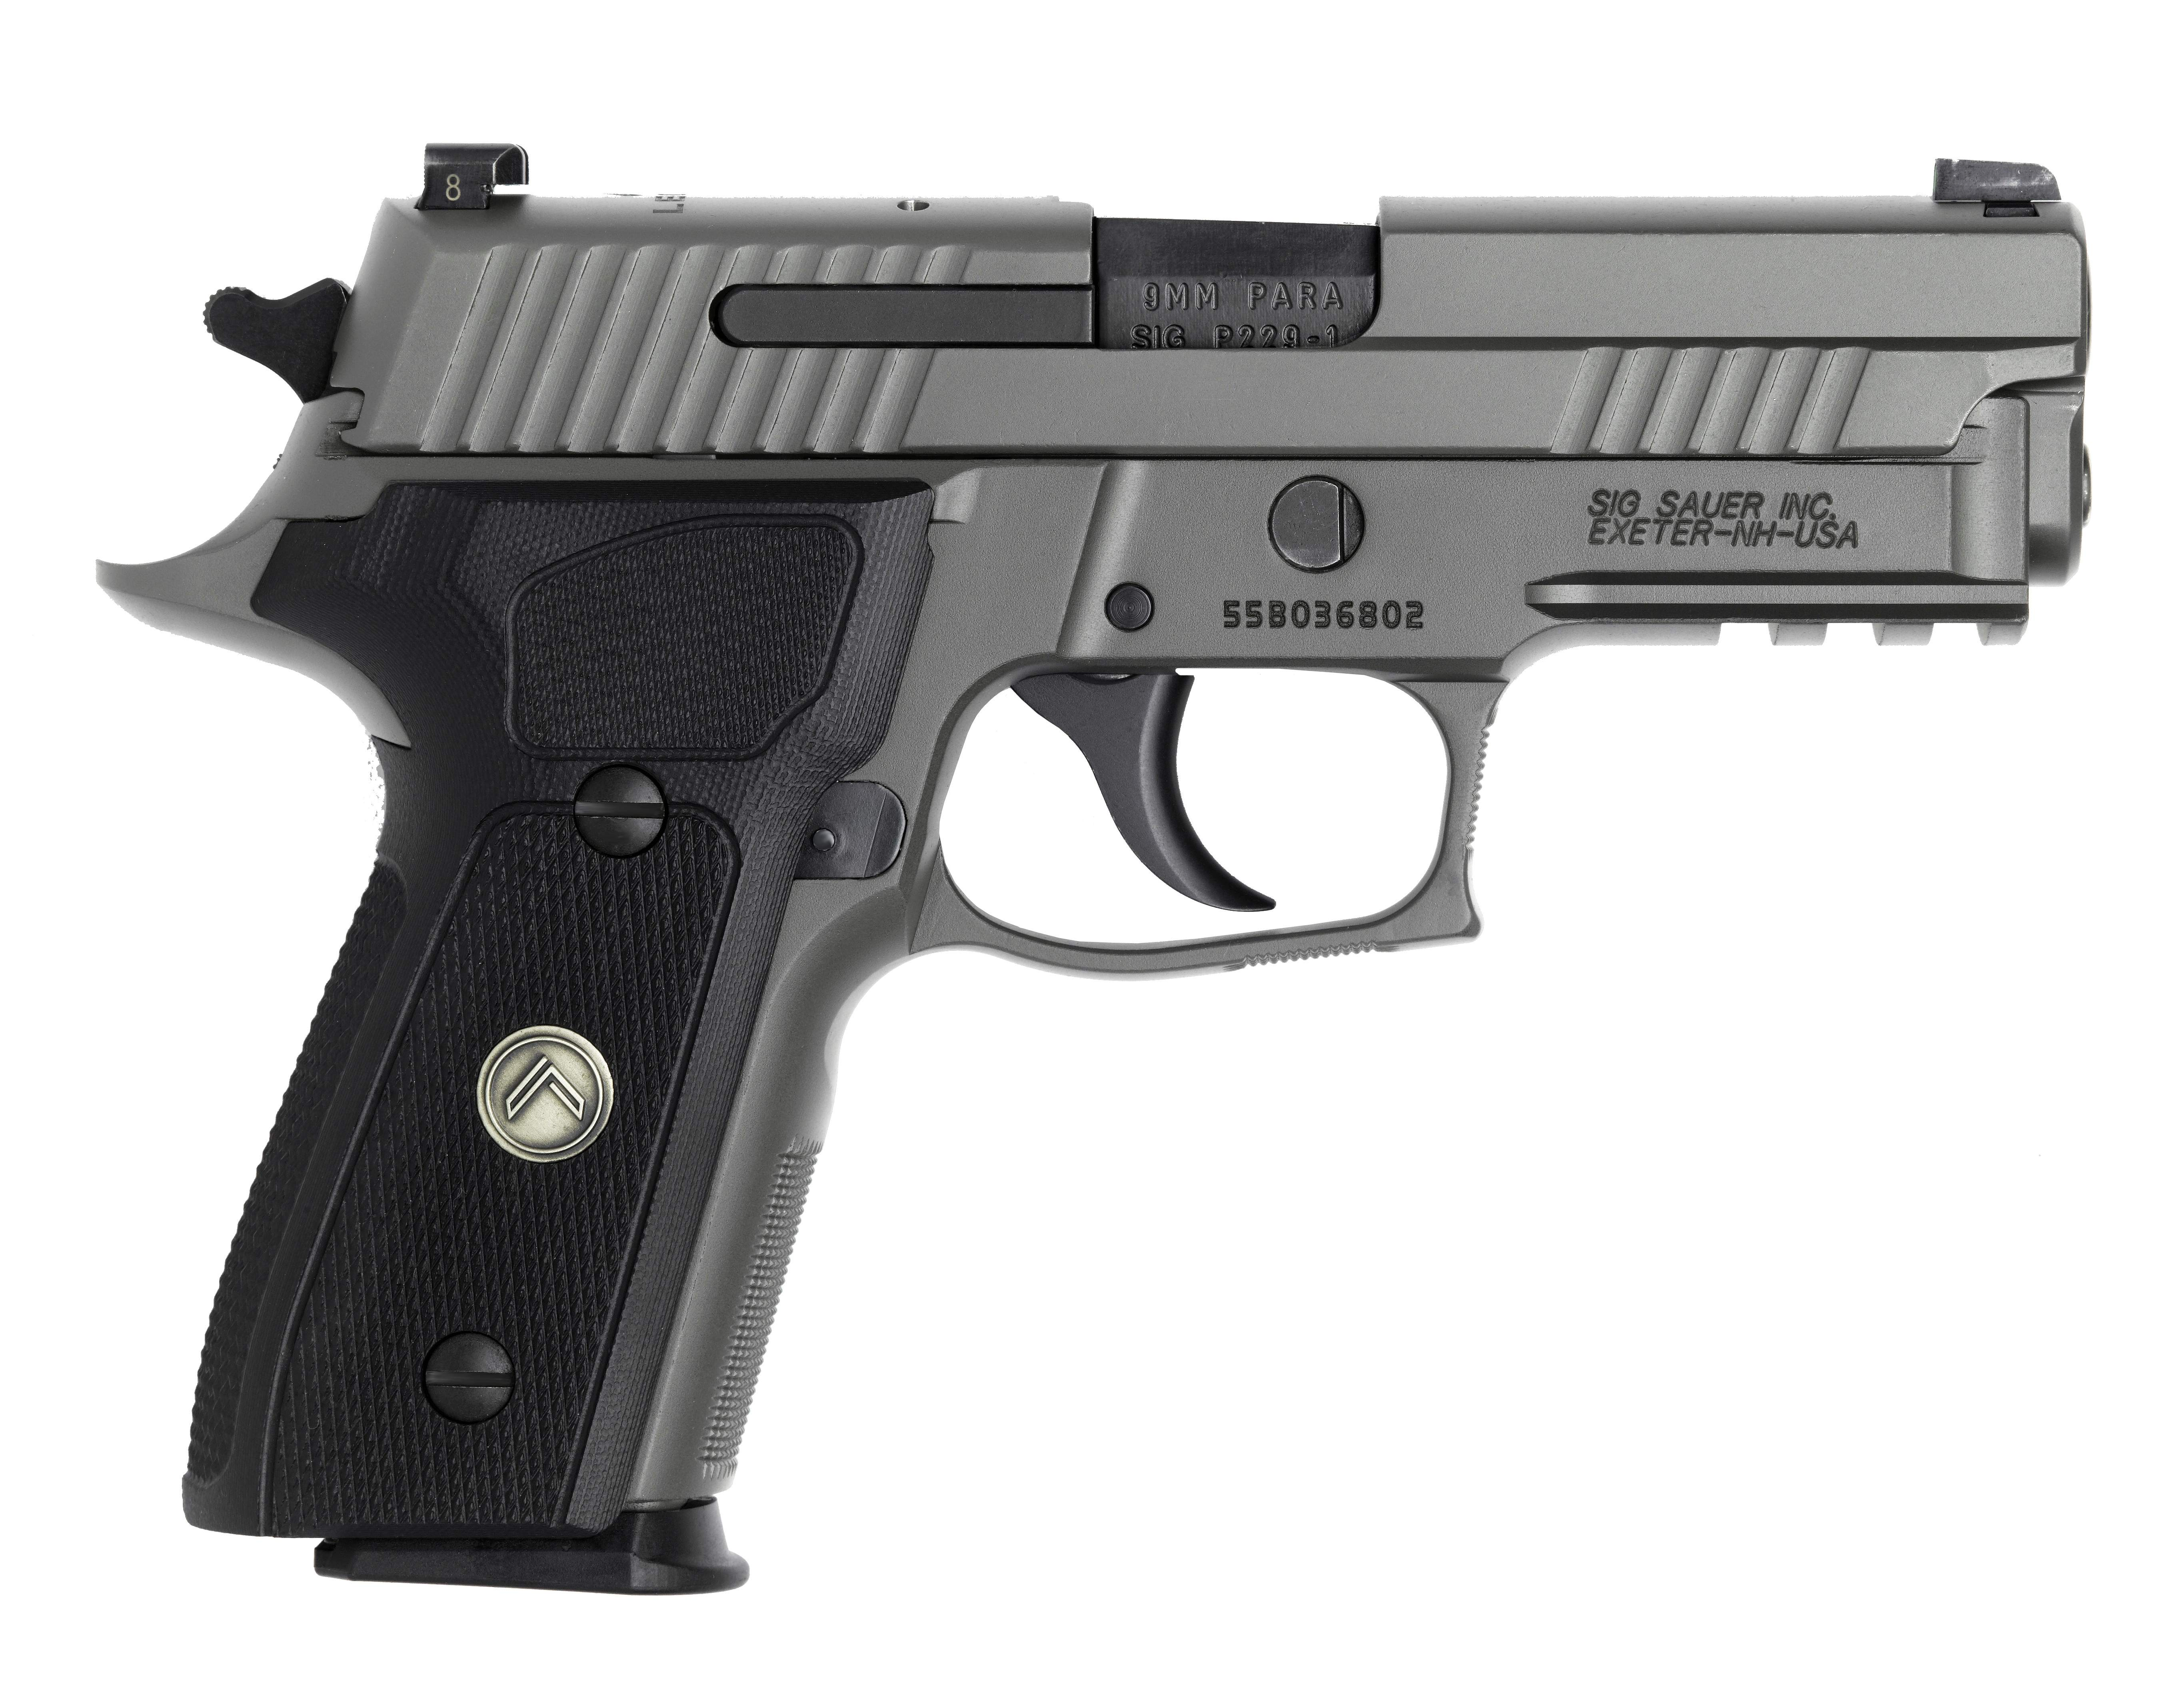 SIG Sauer Introduces Legion Series Featuring Exclusive Firearms, Programs